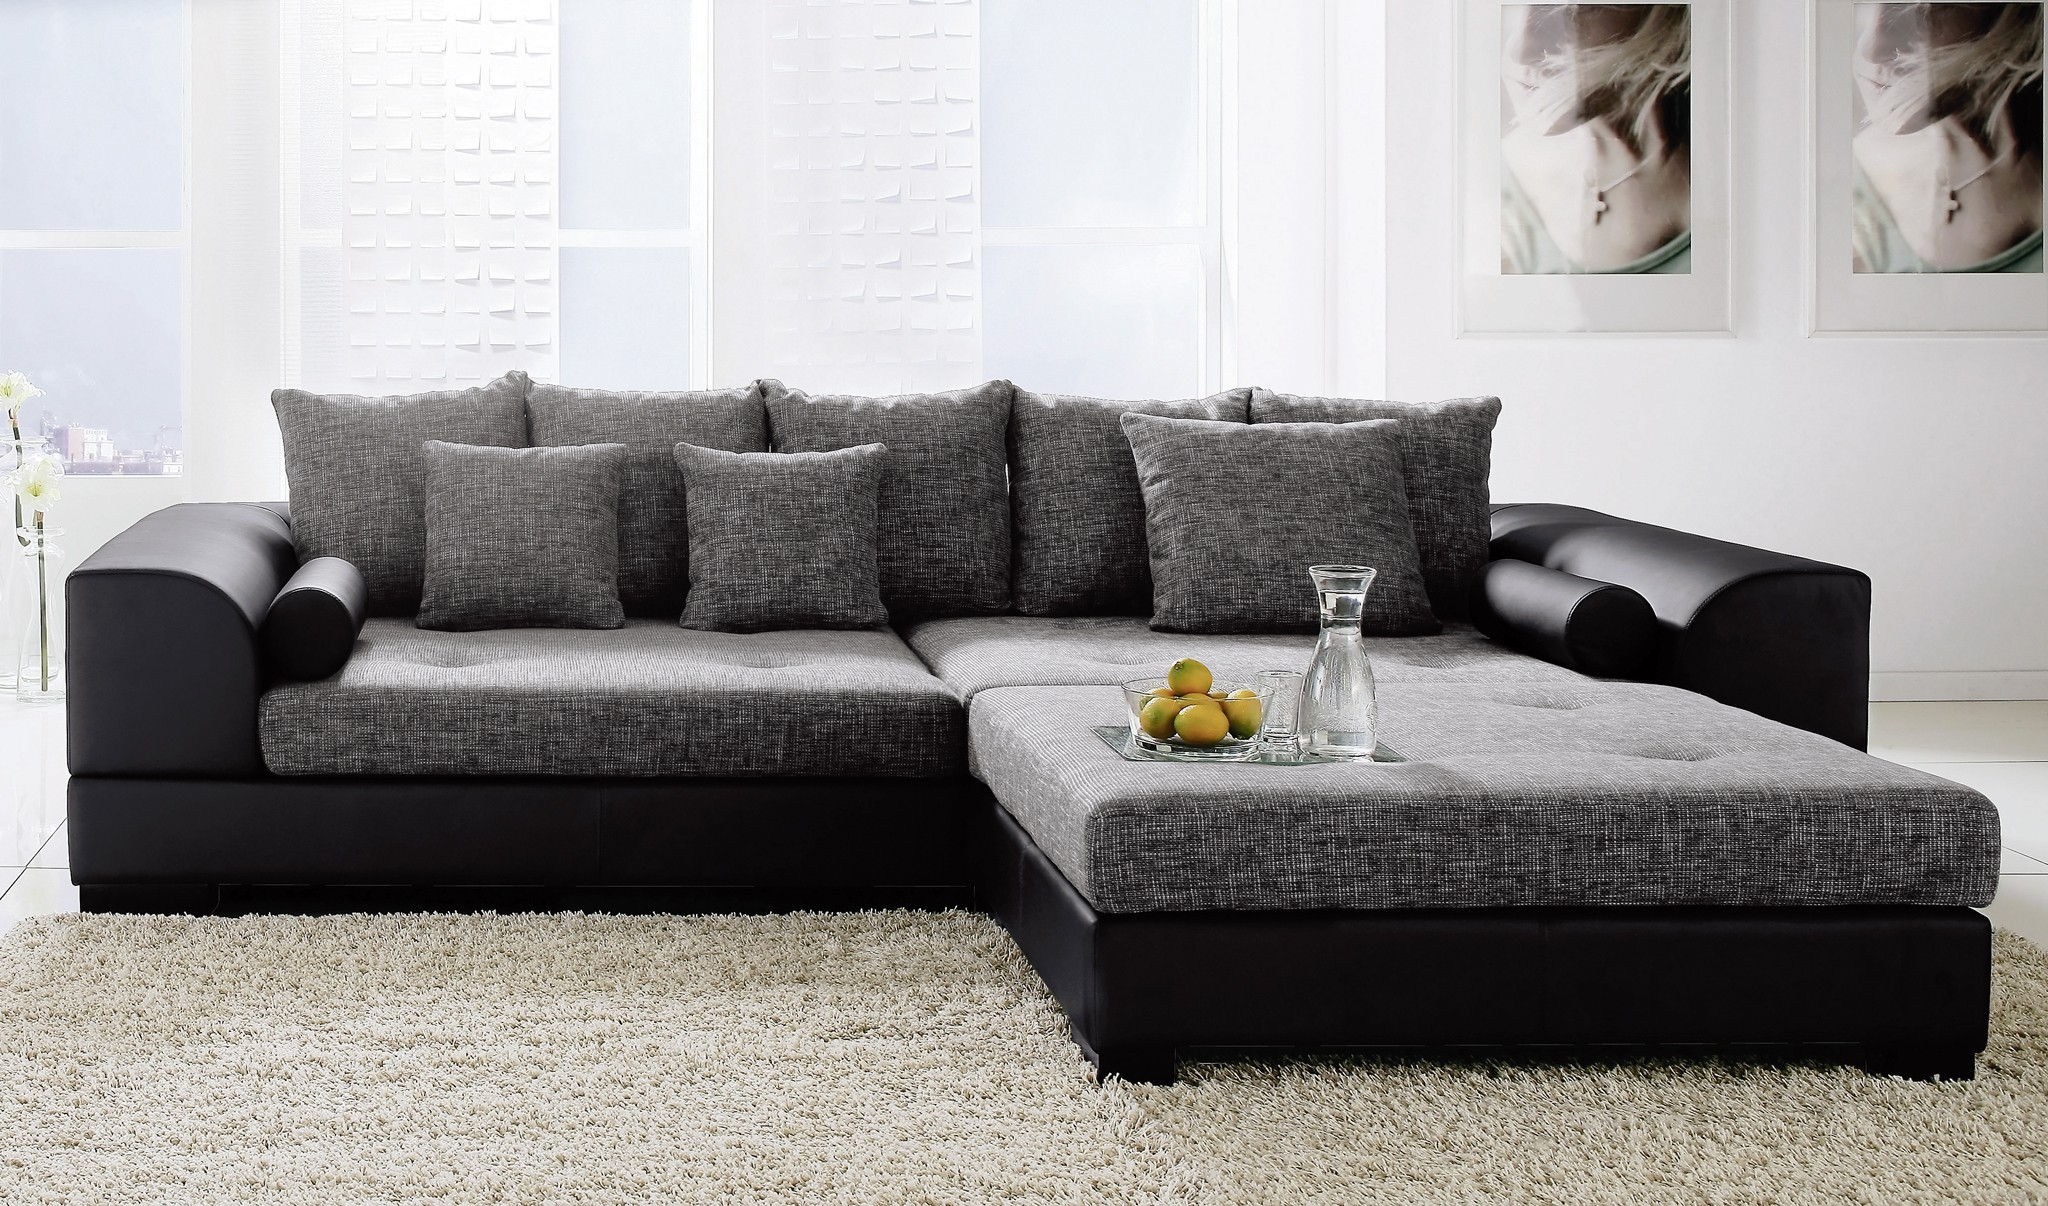 Remarkable Big Sectional Sofas Design Ideas